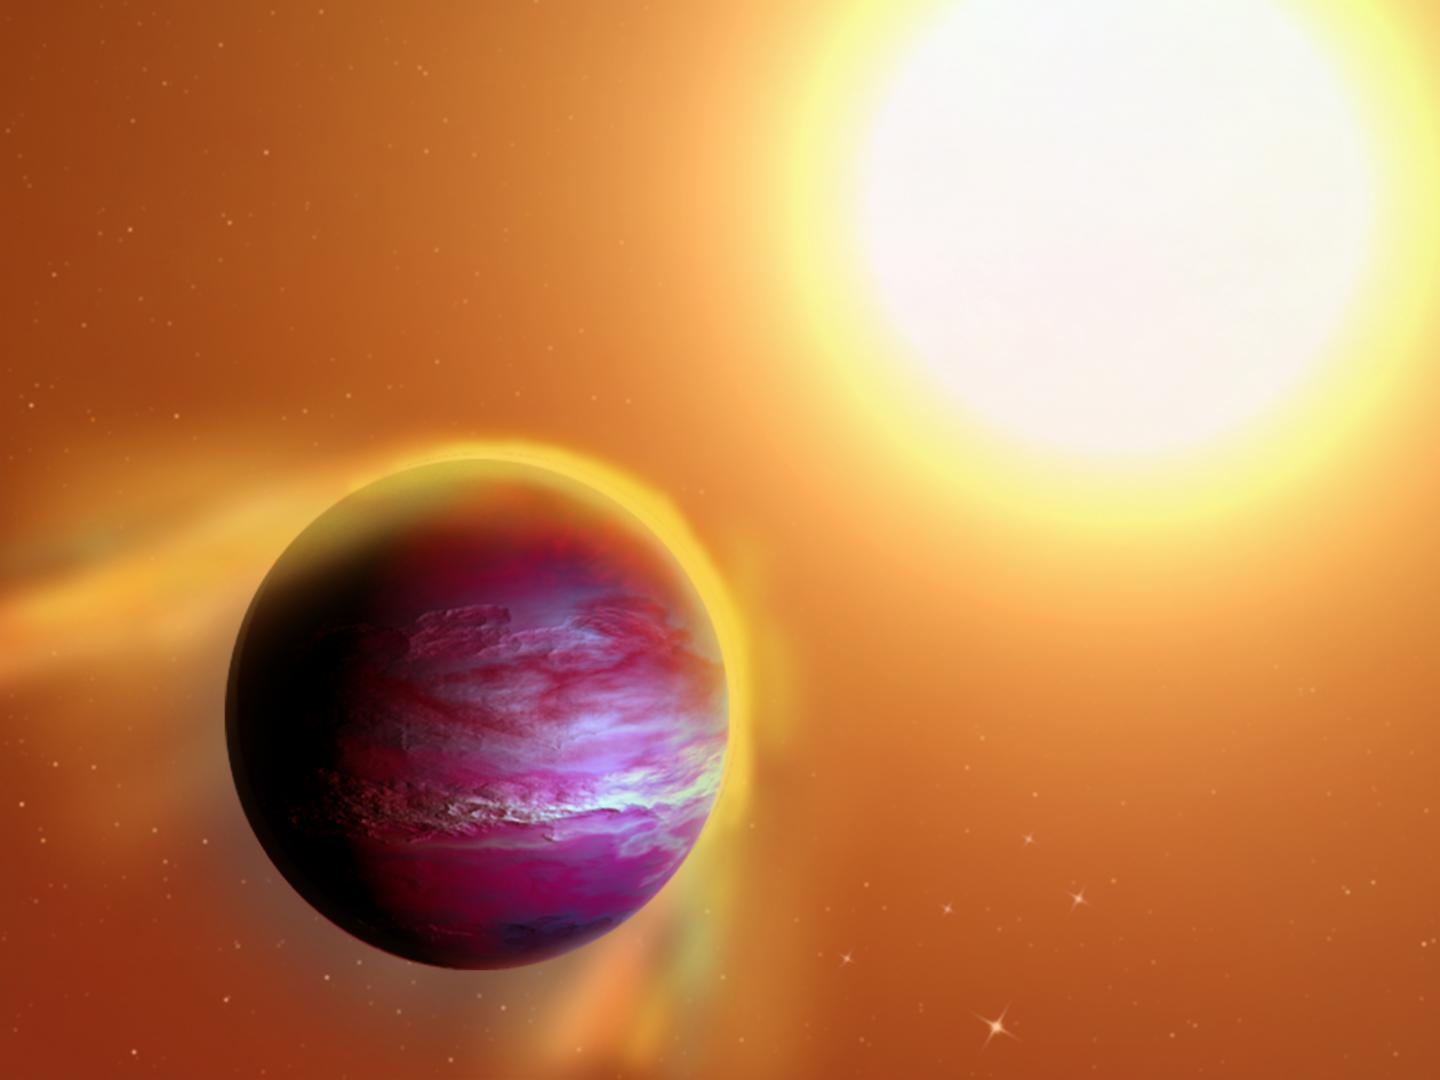 Astronomers may have spotted a dying 'hot Jupiter'